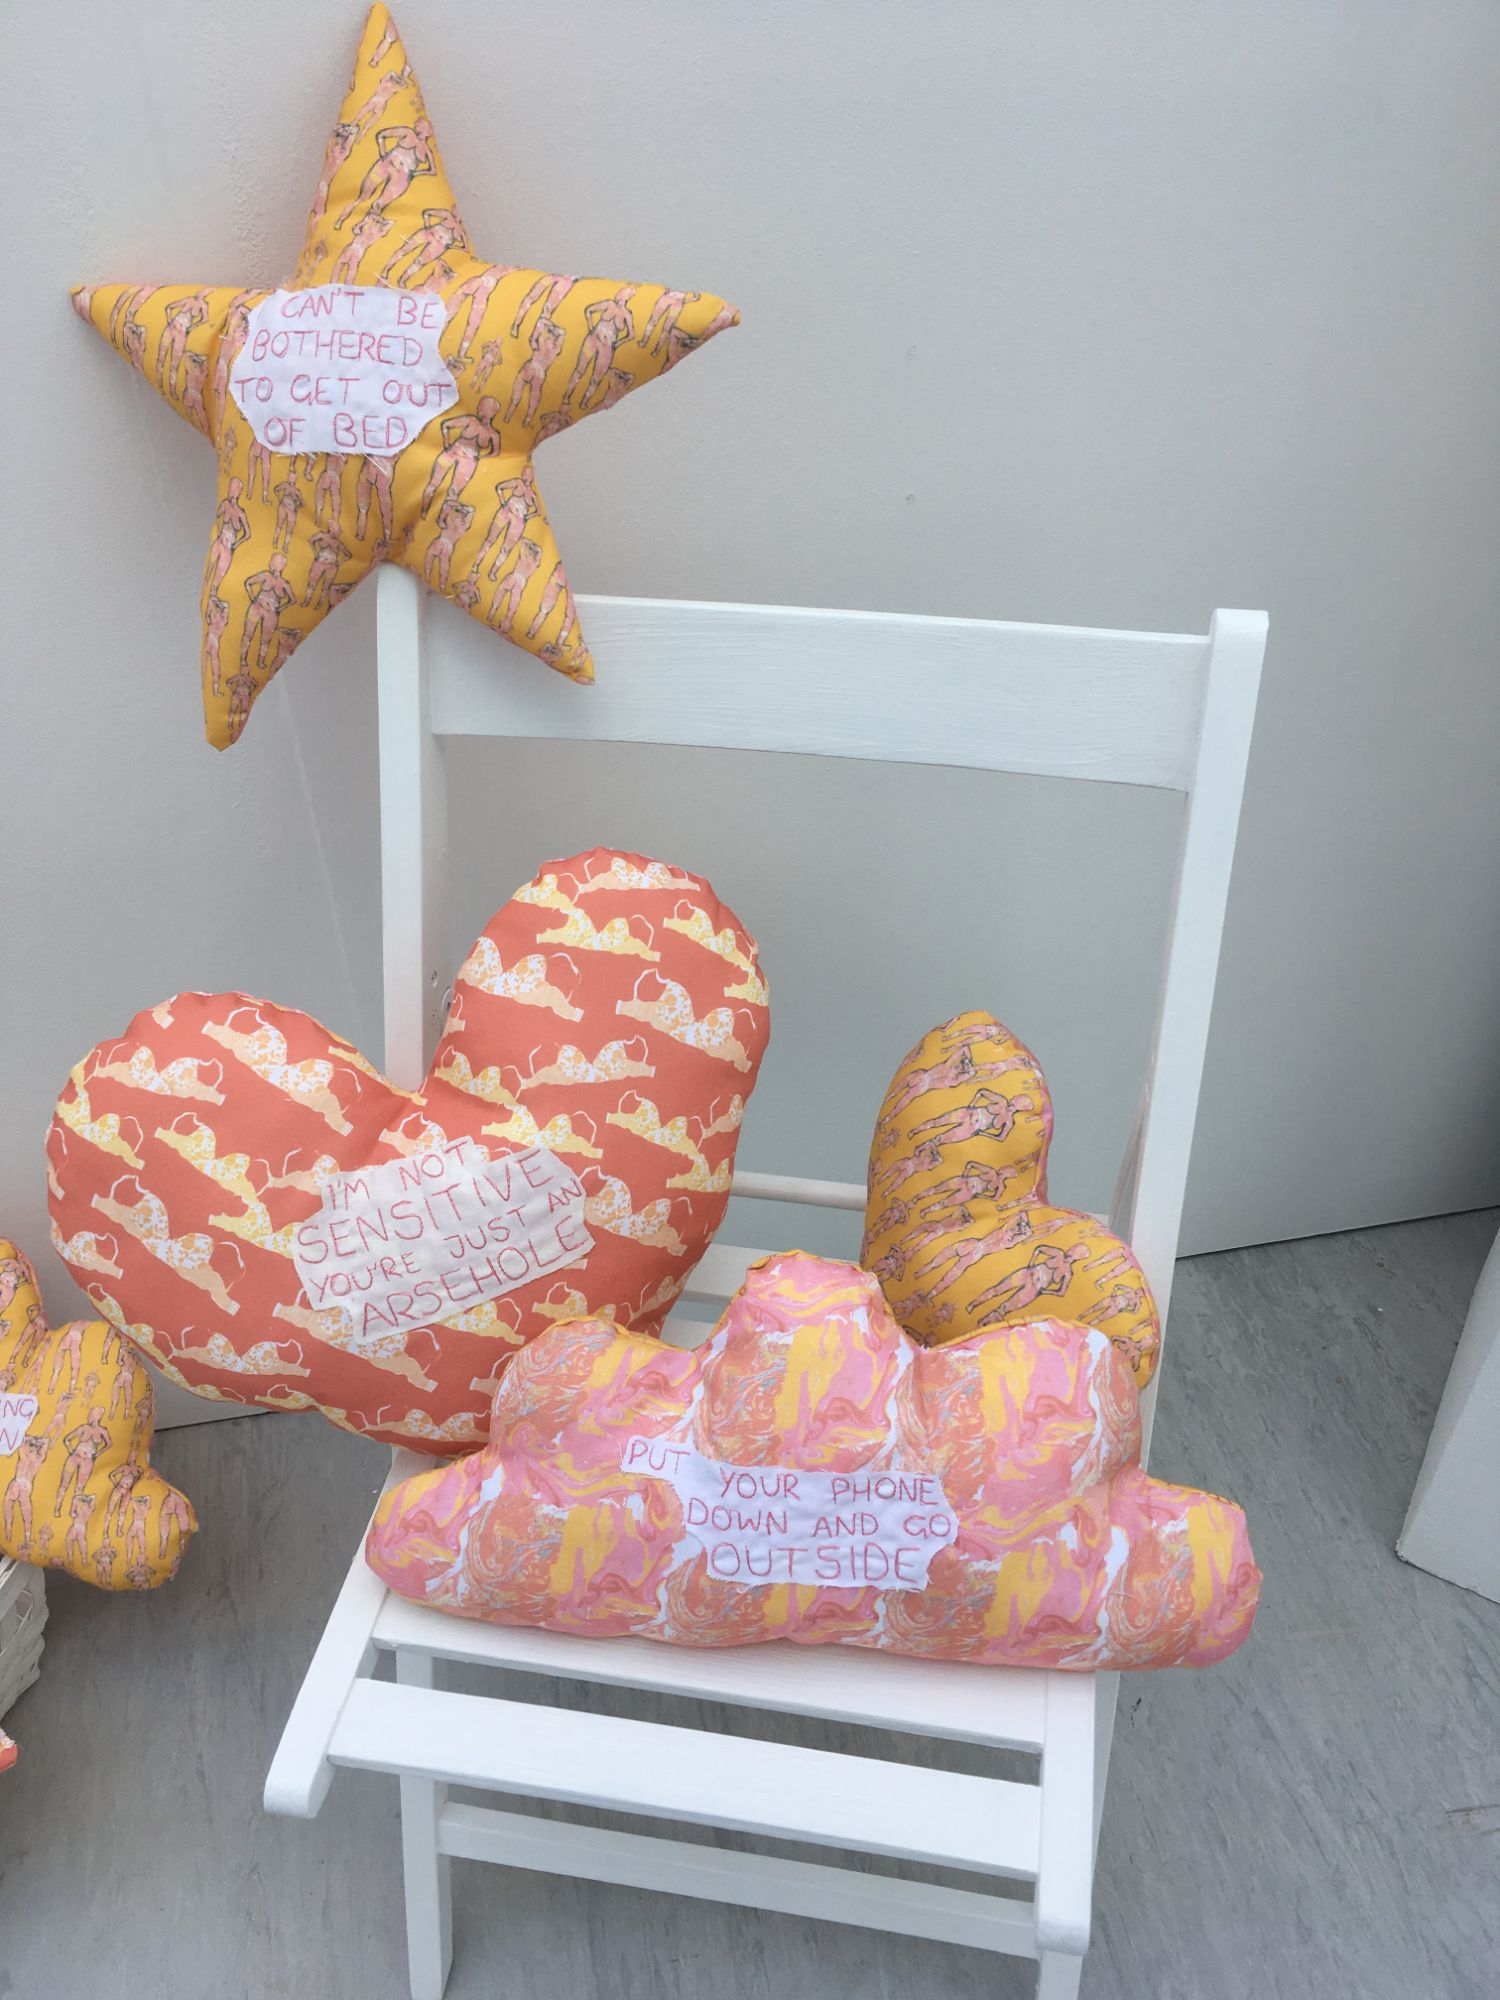 A selection of Contrary to Reason cushions on a white chair